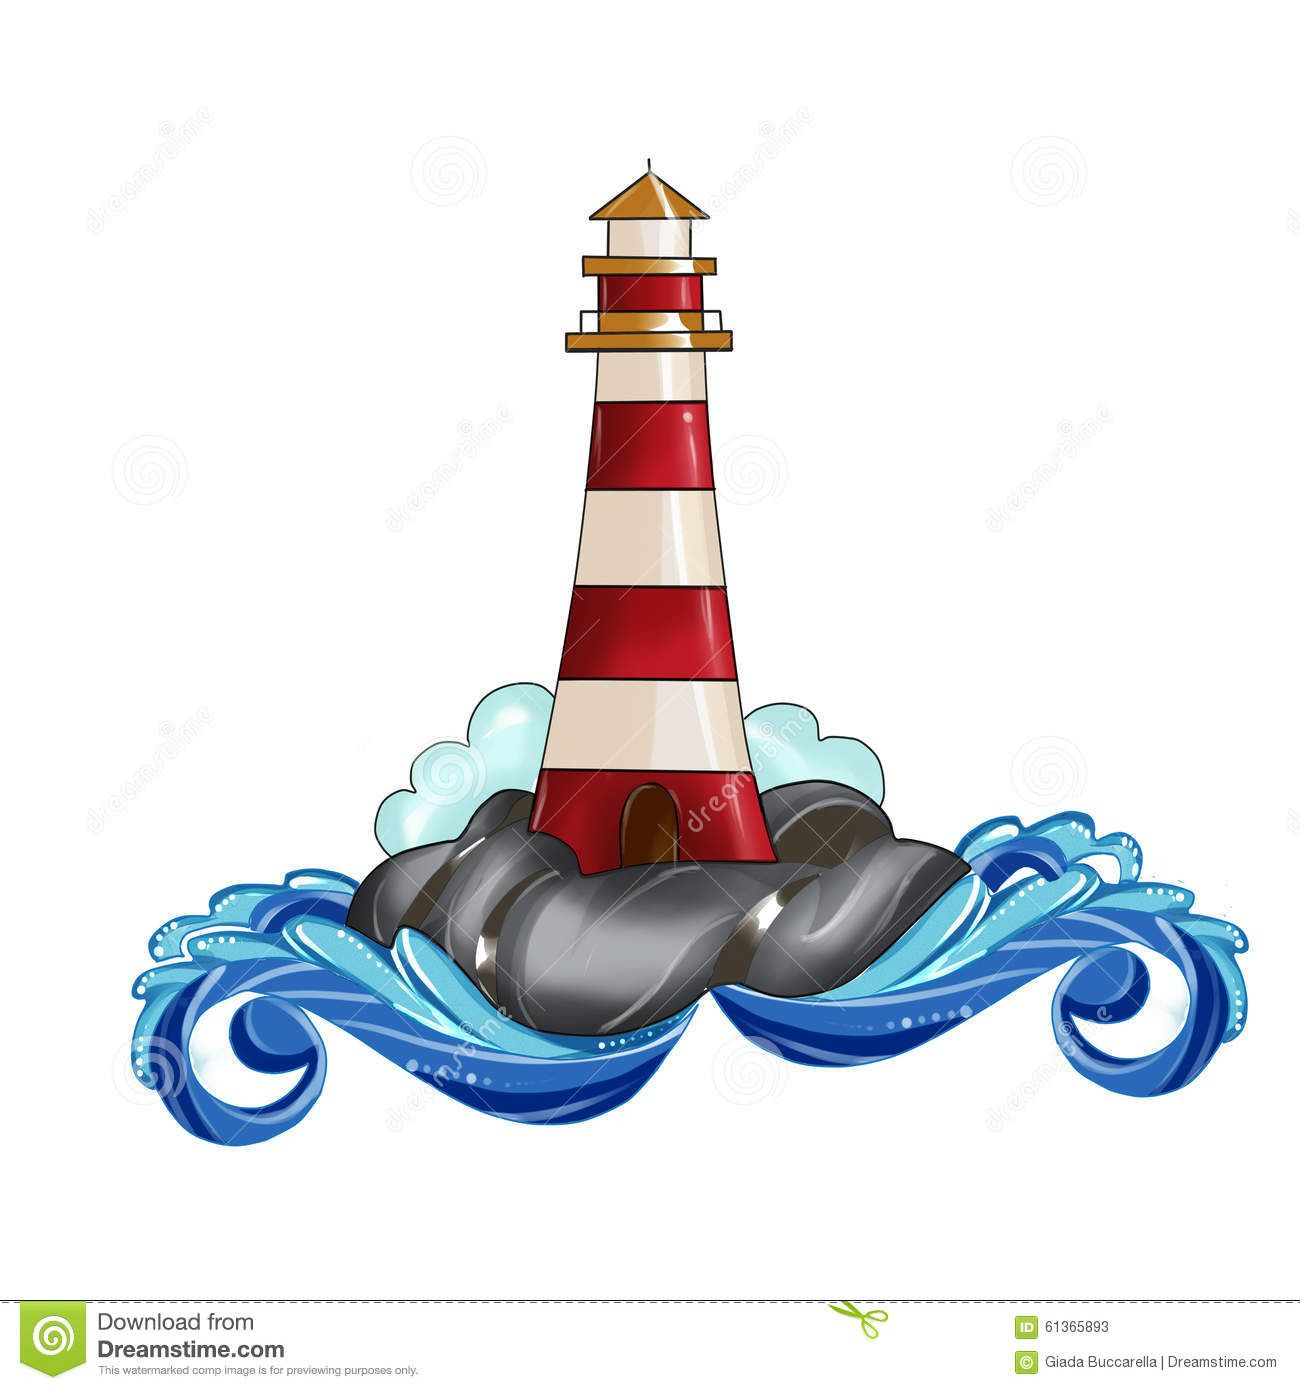 Lighthouse Stock Illustrations, Vectors, & Clipart.